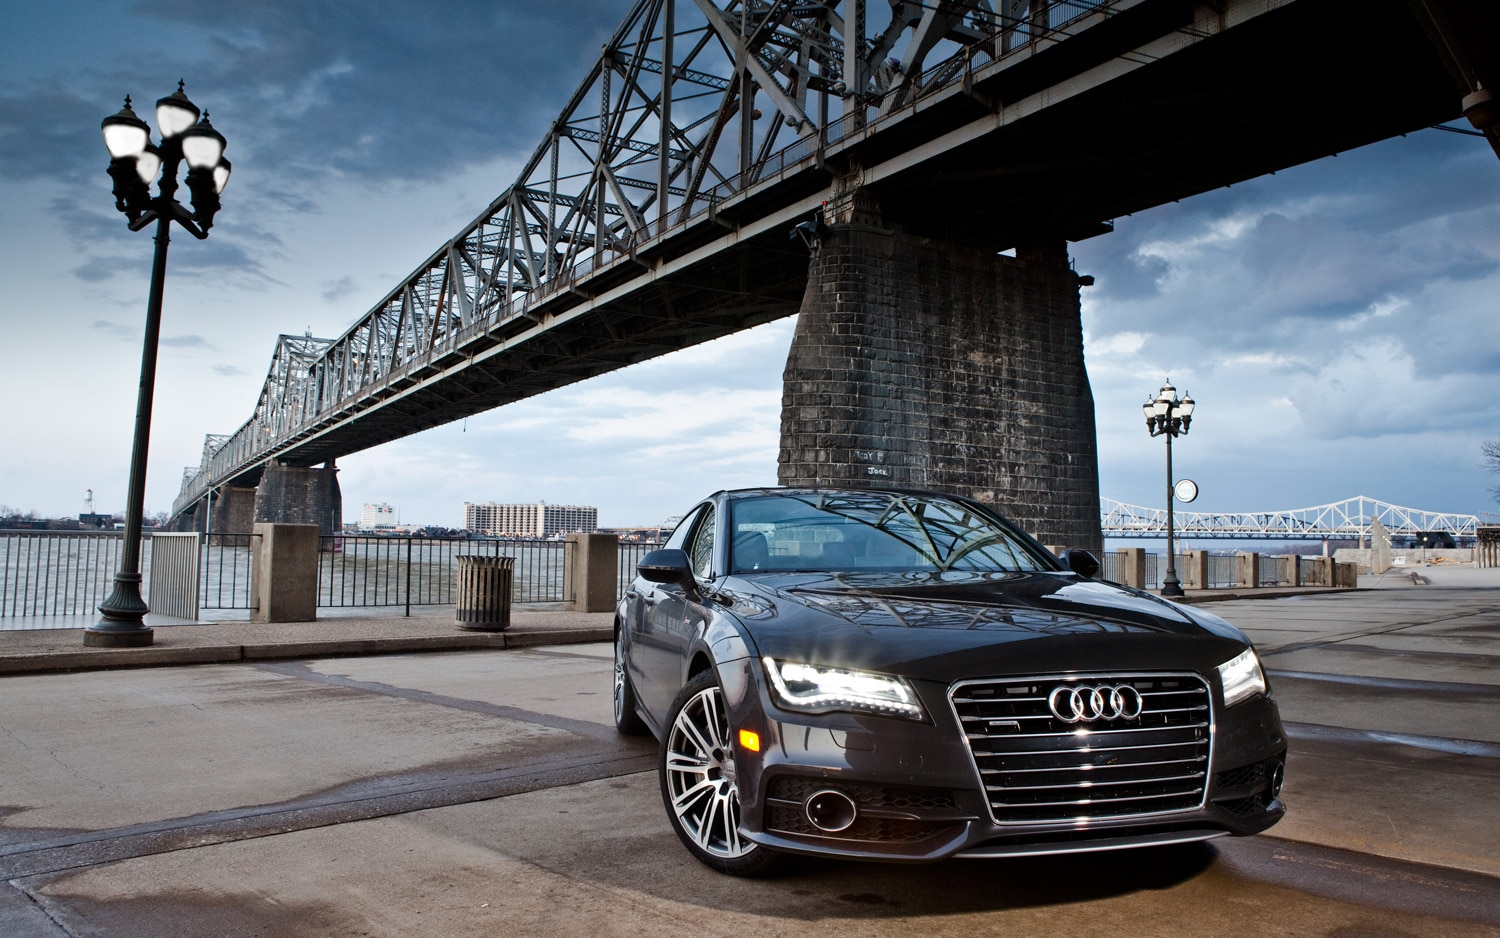 2012 Audi A7 Front View1